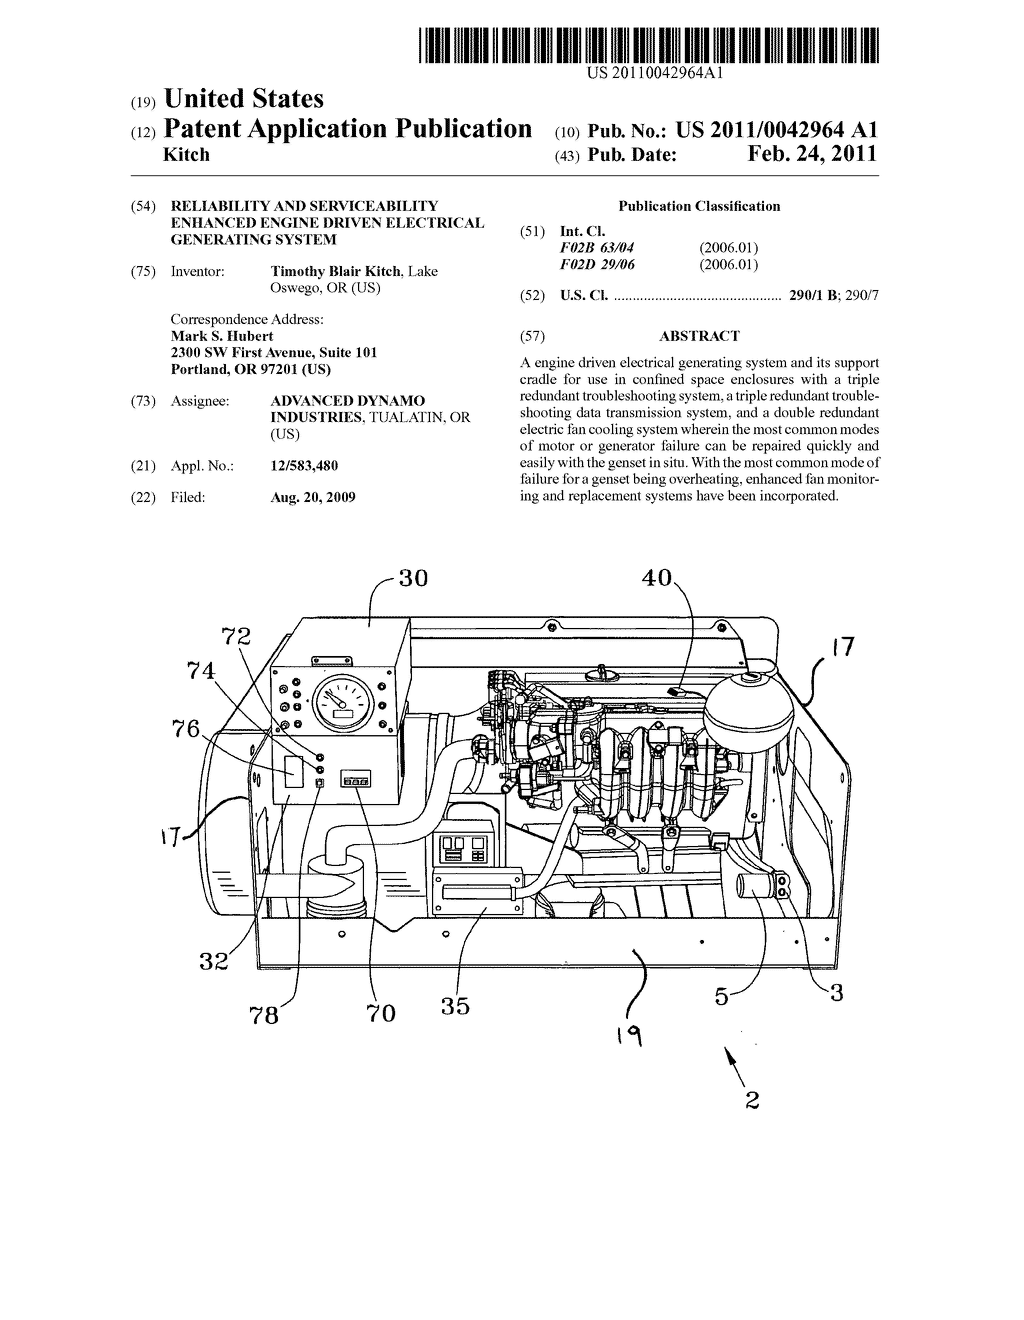 Reliability and serviceability enhanced engine driven electrical generating system - diagram, schematic, and image 01